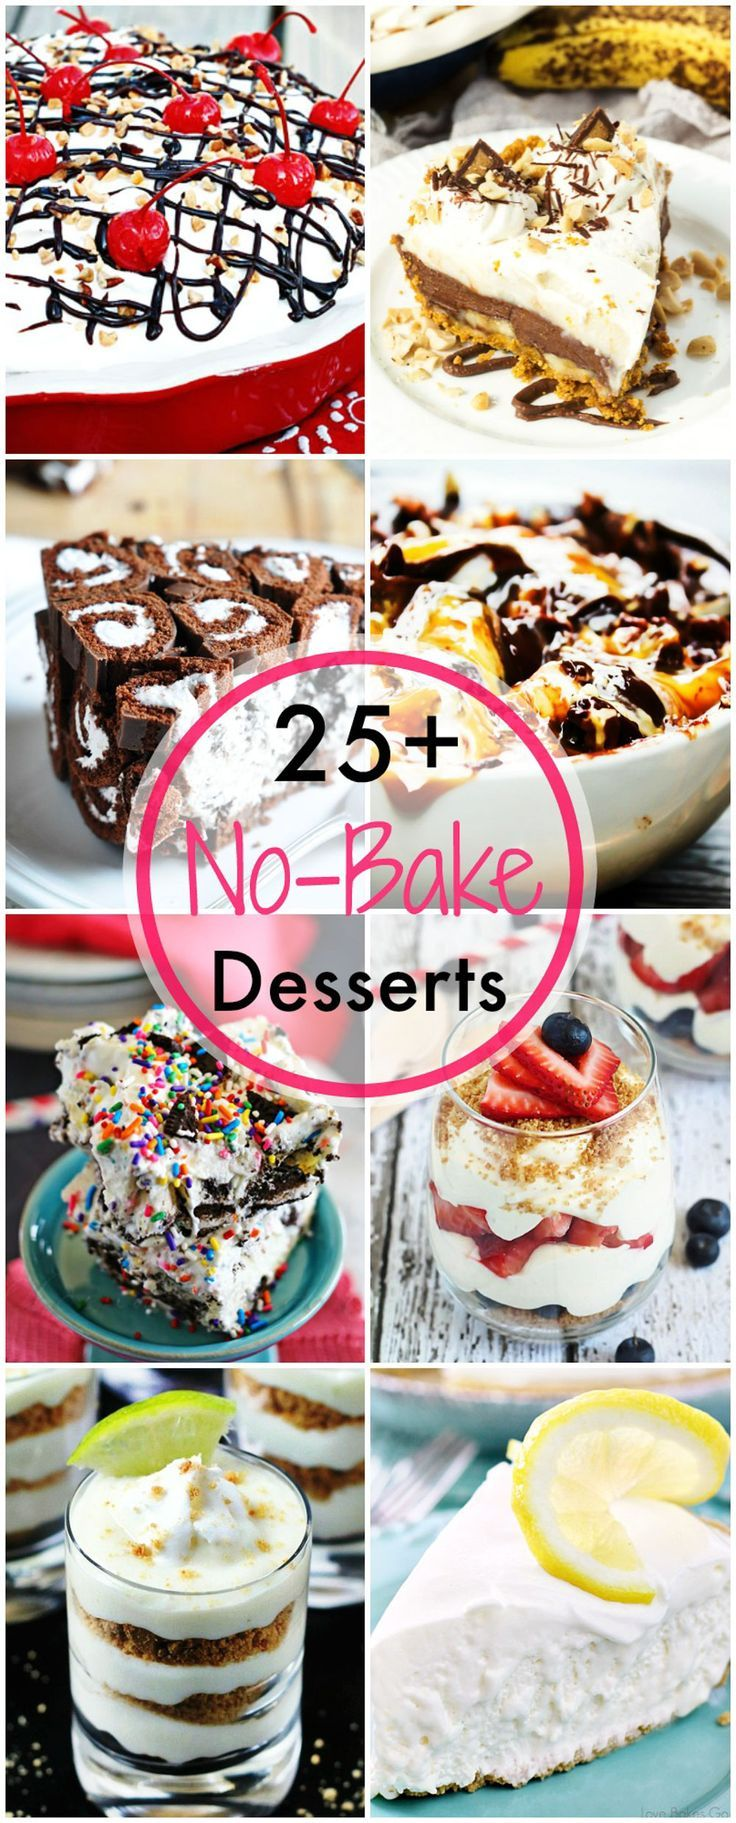 From pies to ice cream and tarts to cakes, here are 25+ no bake desserts to satisfy your summer cravings!